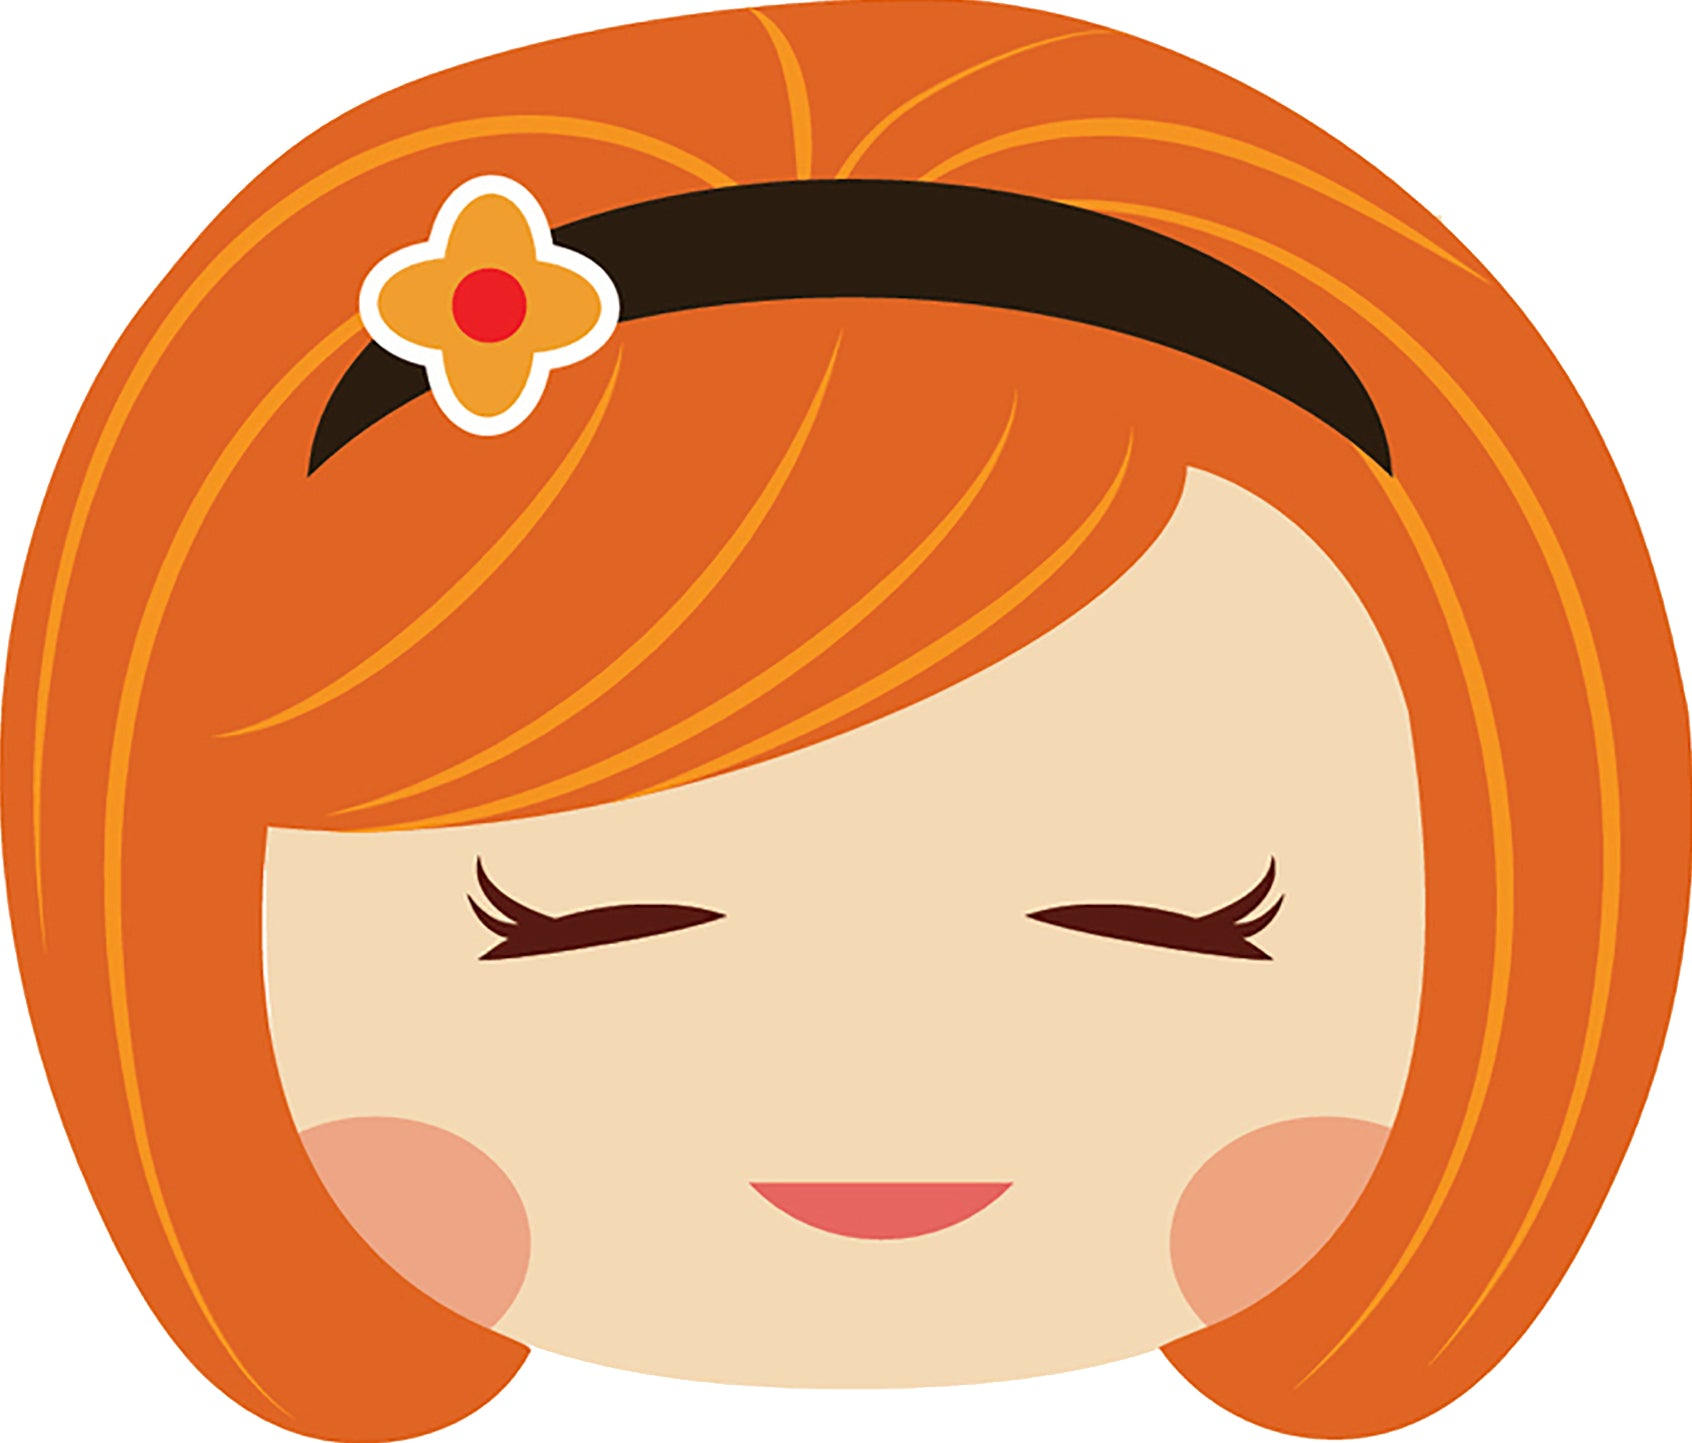 Sweet Little Red Head Kawaii School Girl Emoji #8 Vinyl Decal Sticker